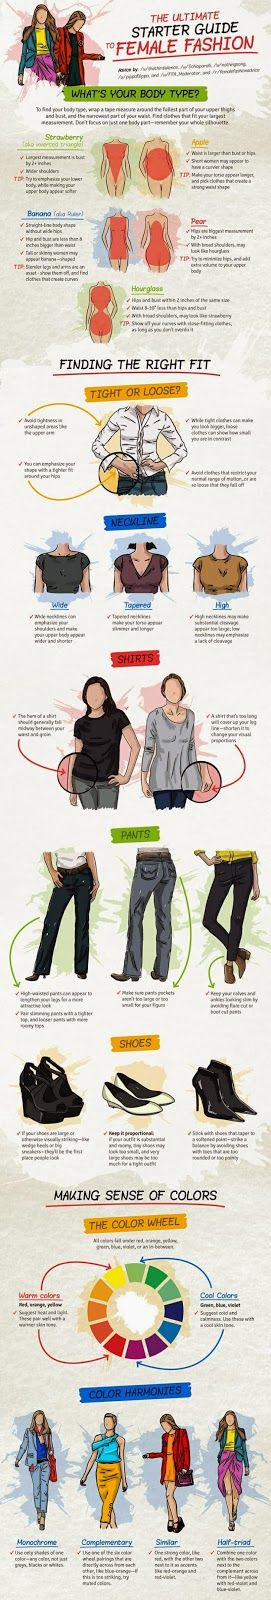 The ultimate starter guide to female fashion